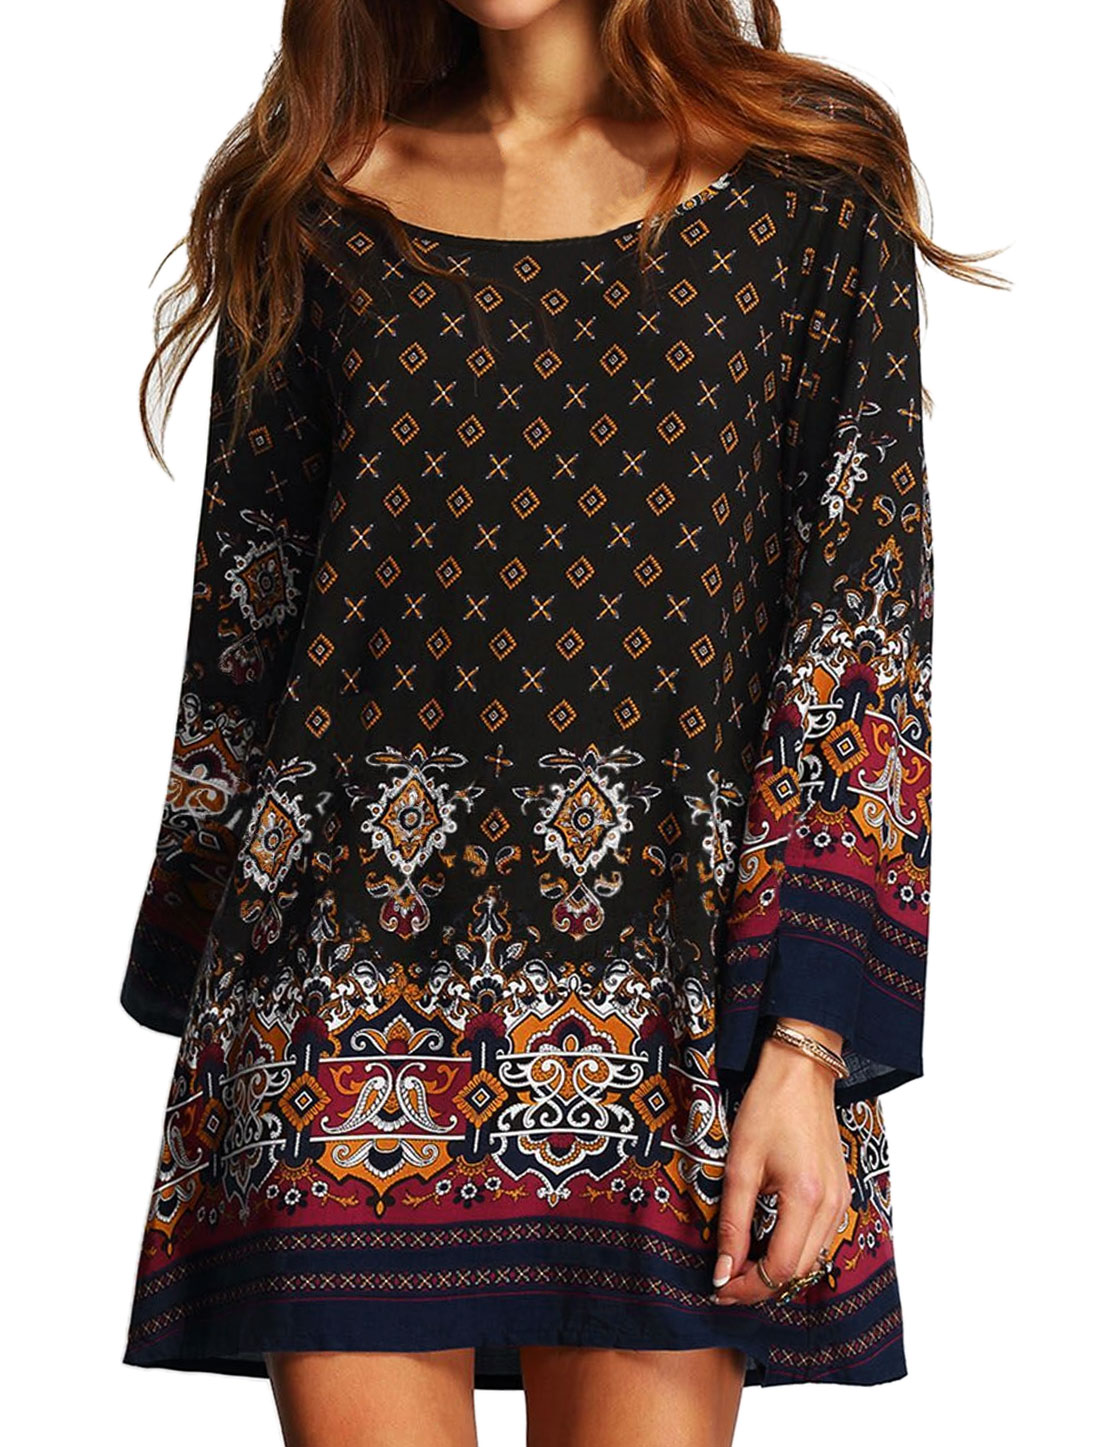 Women Scoop Neck Long Sleeves Novelty Prints Tunic Dress Black XS